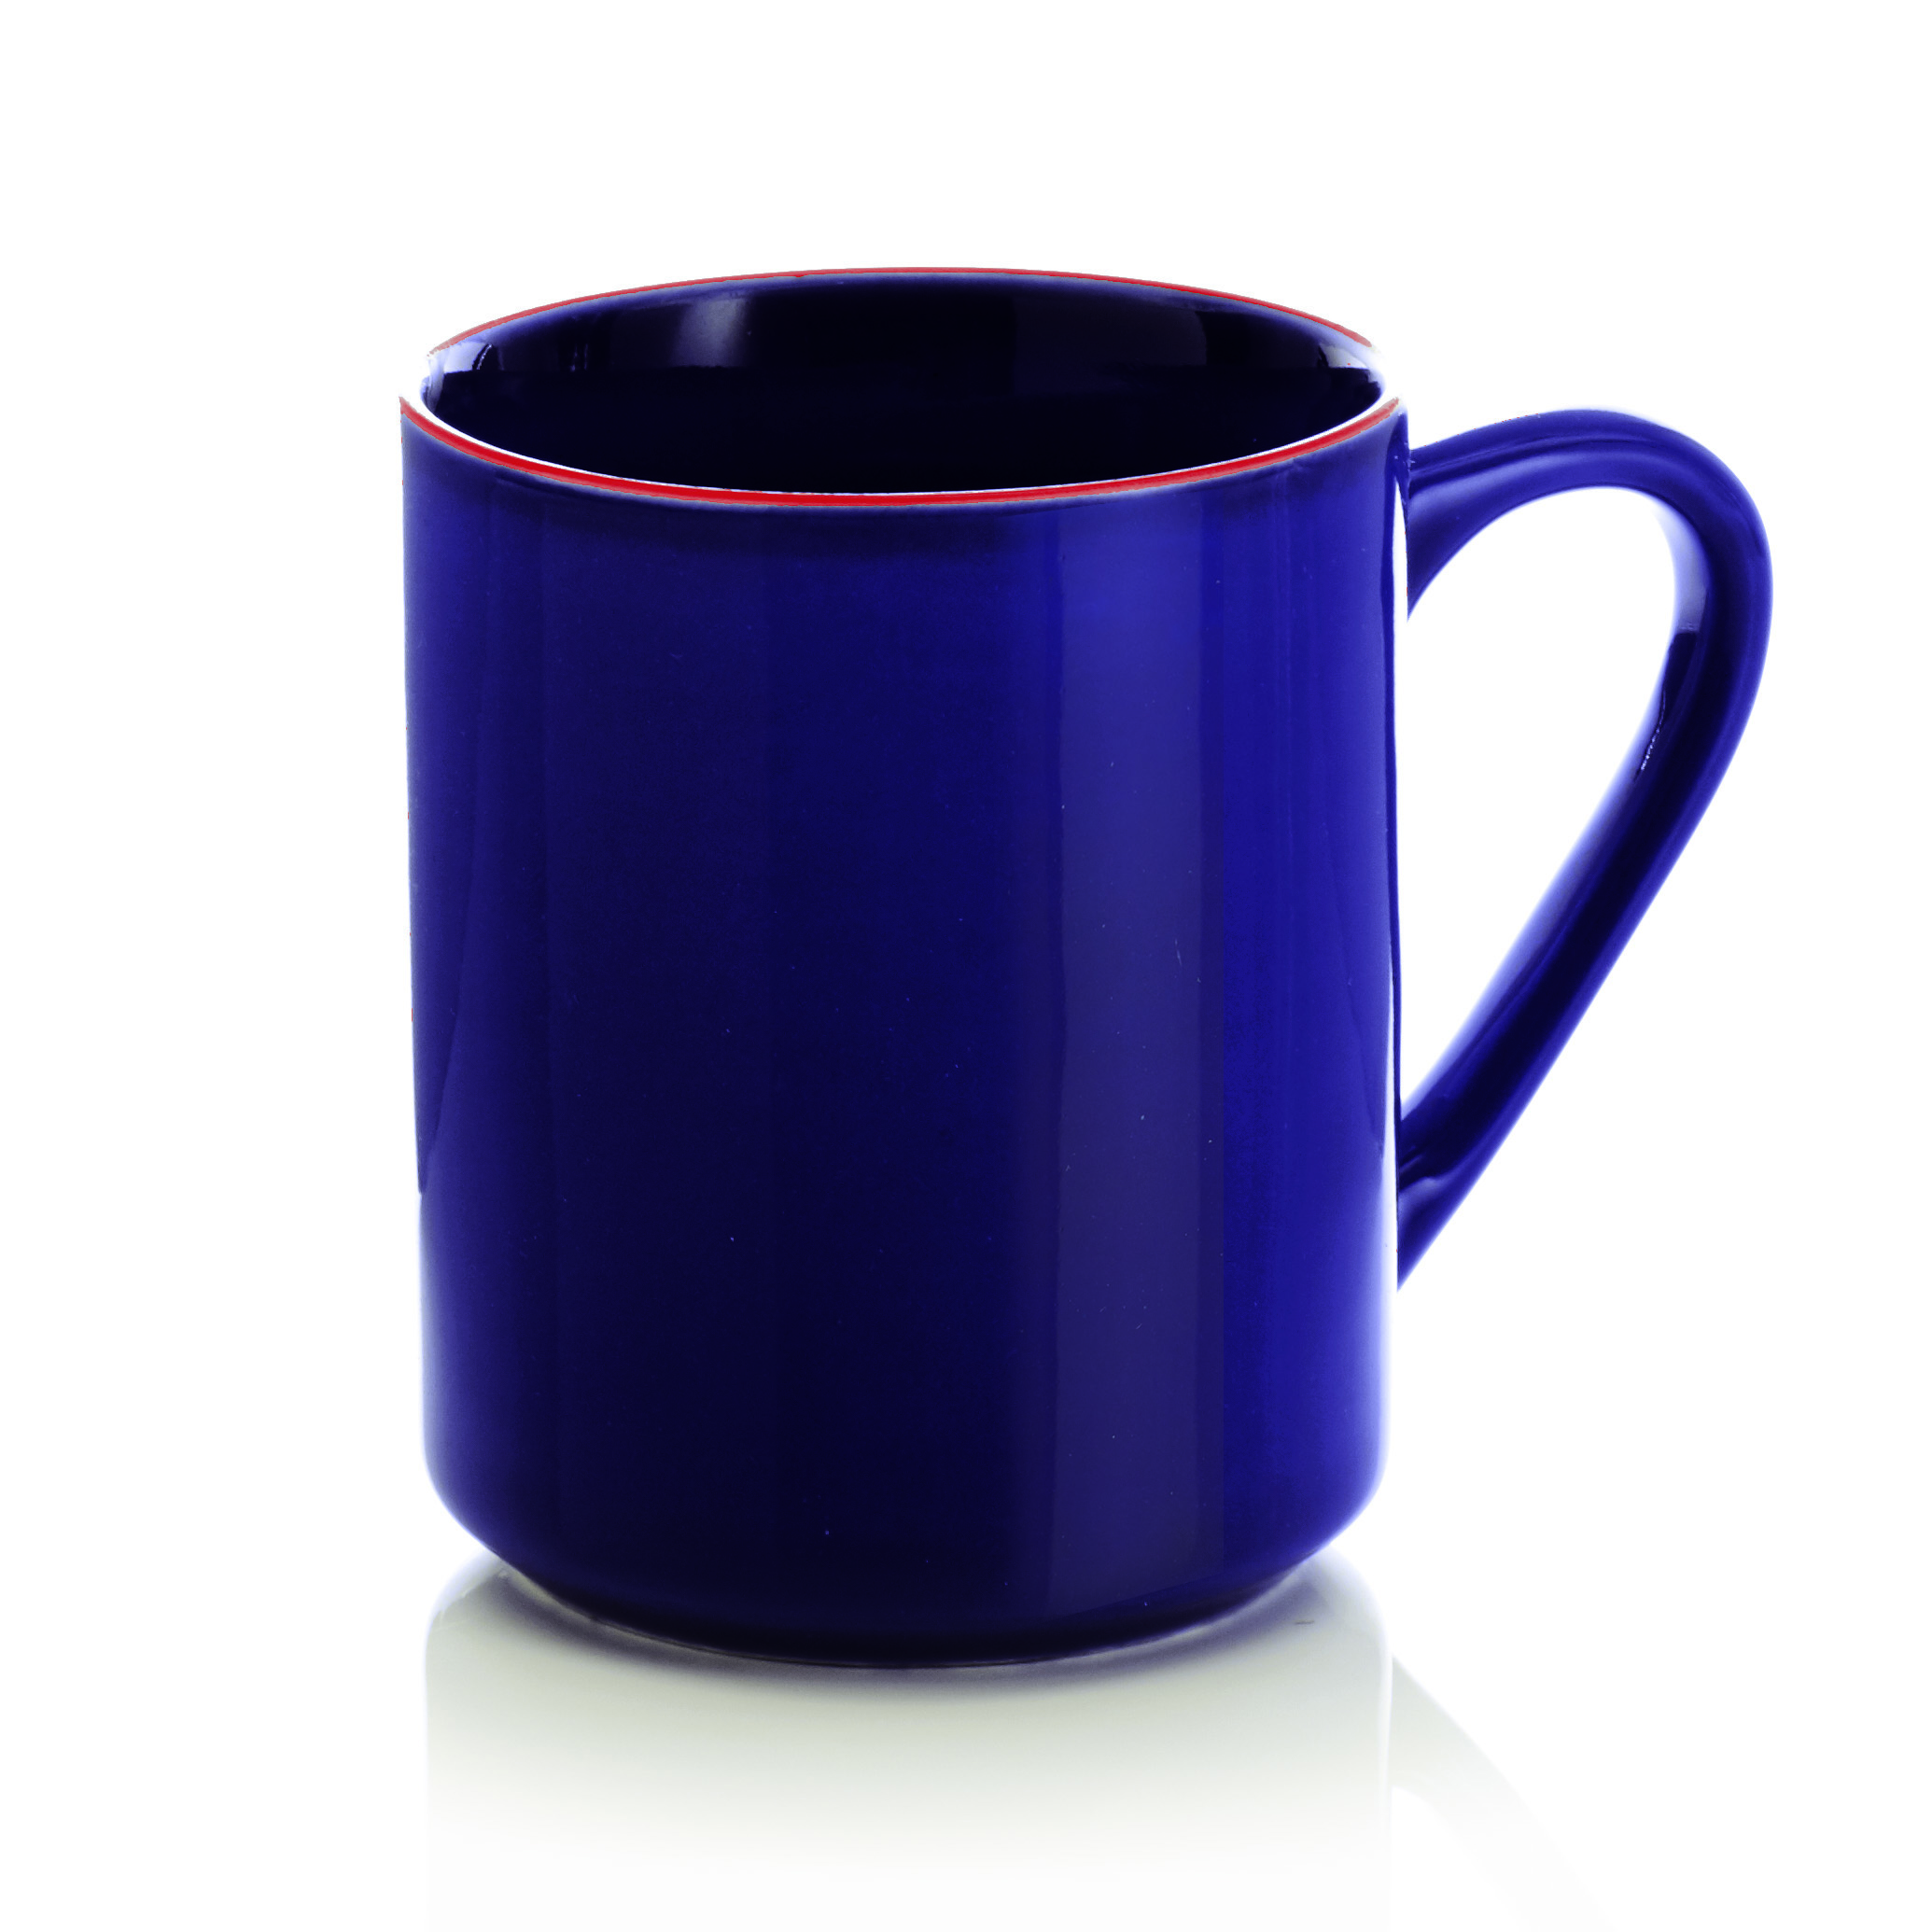 Cobalt Song Cai Medium Mug